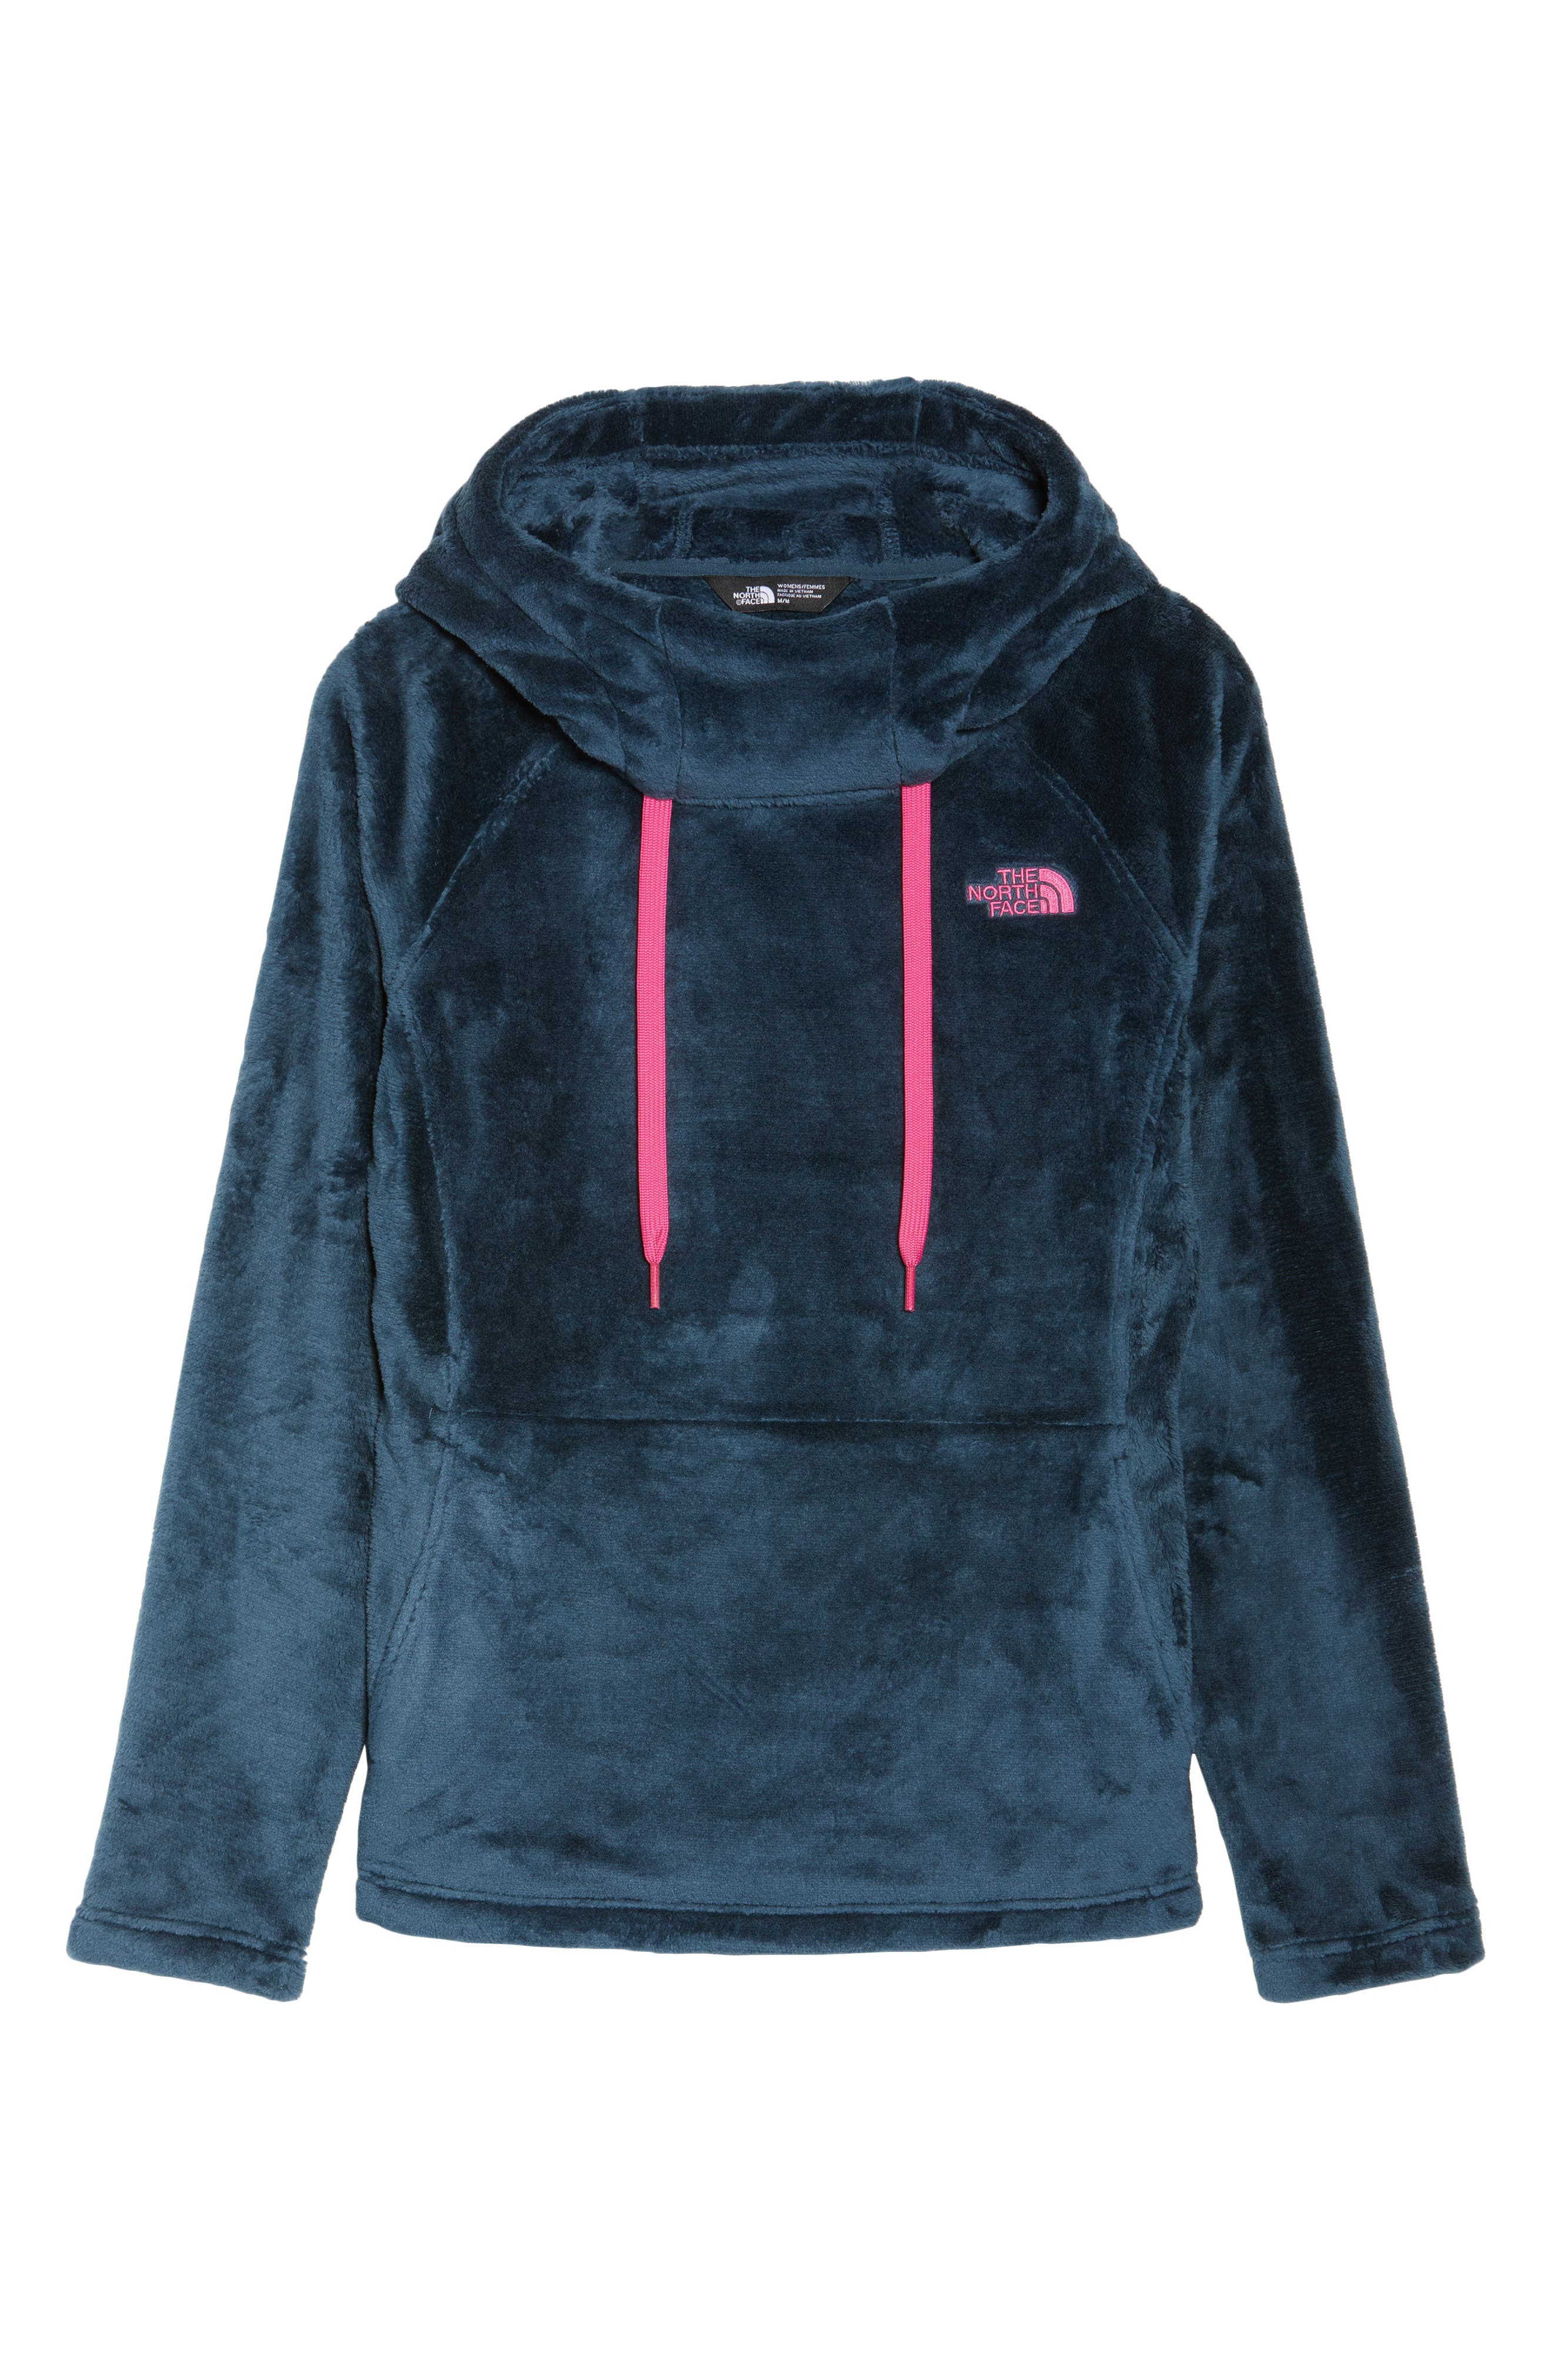 Bellarine Hoodie,                         Main,                         color, Ink Blue